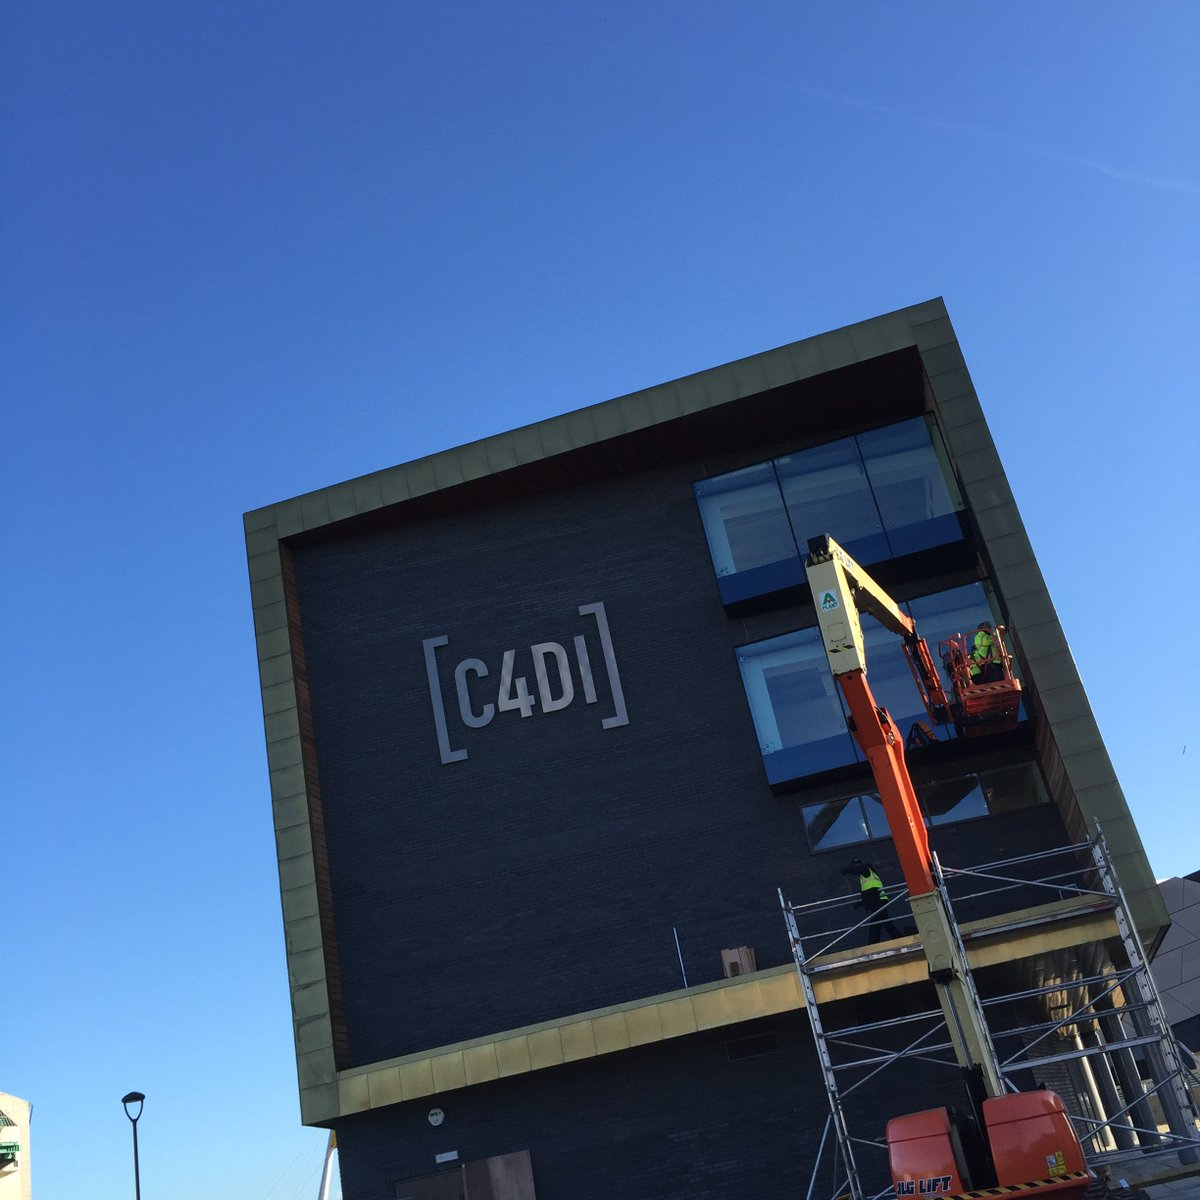 Liking the sign on the @C4Dihull #newC4DI https://t.co/p55NFTestq